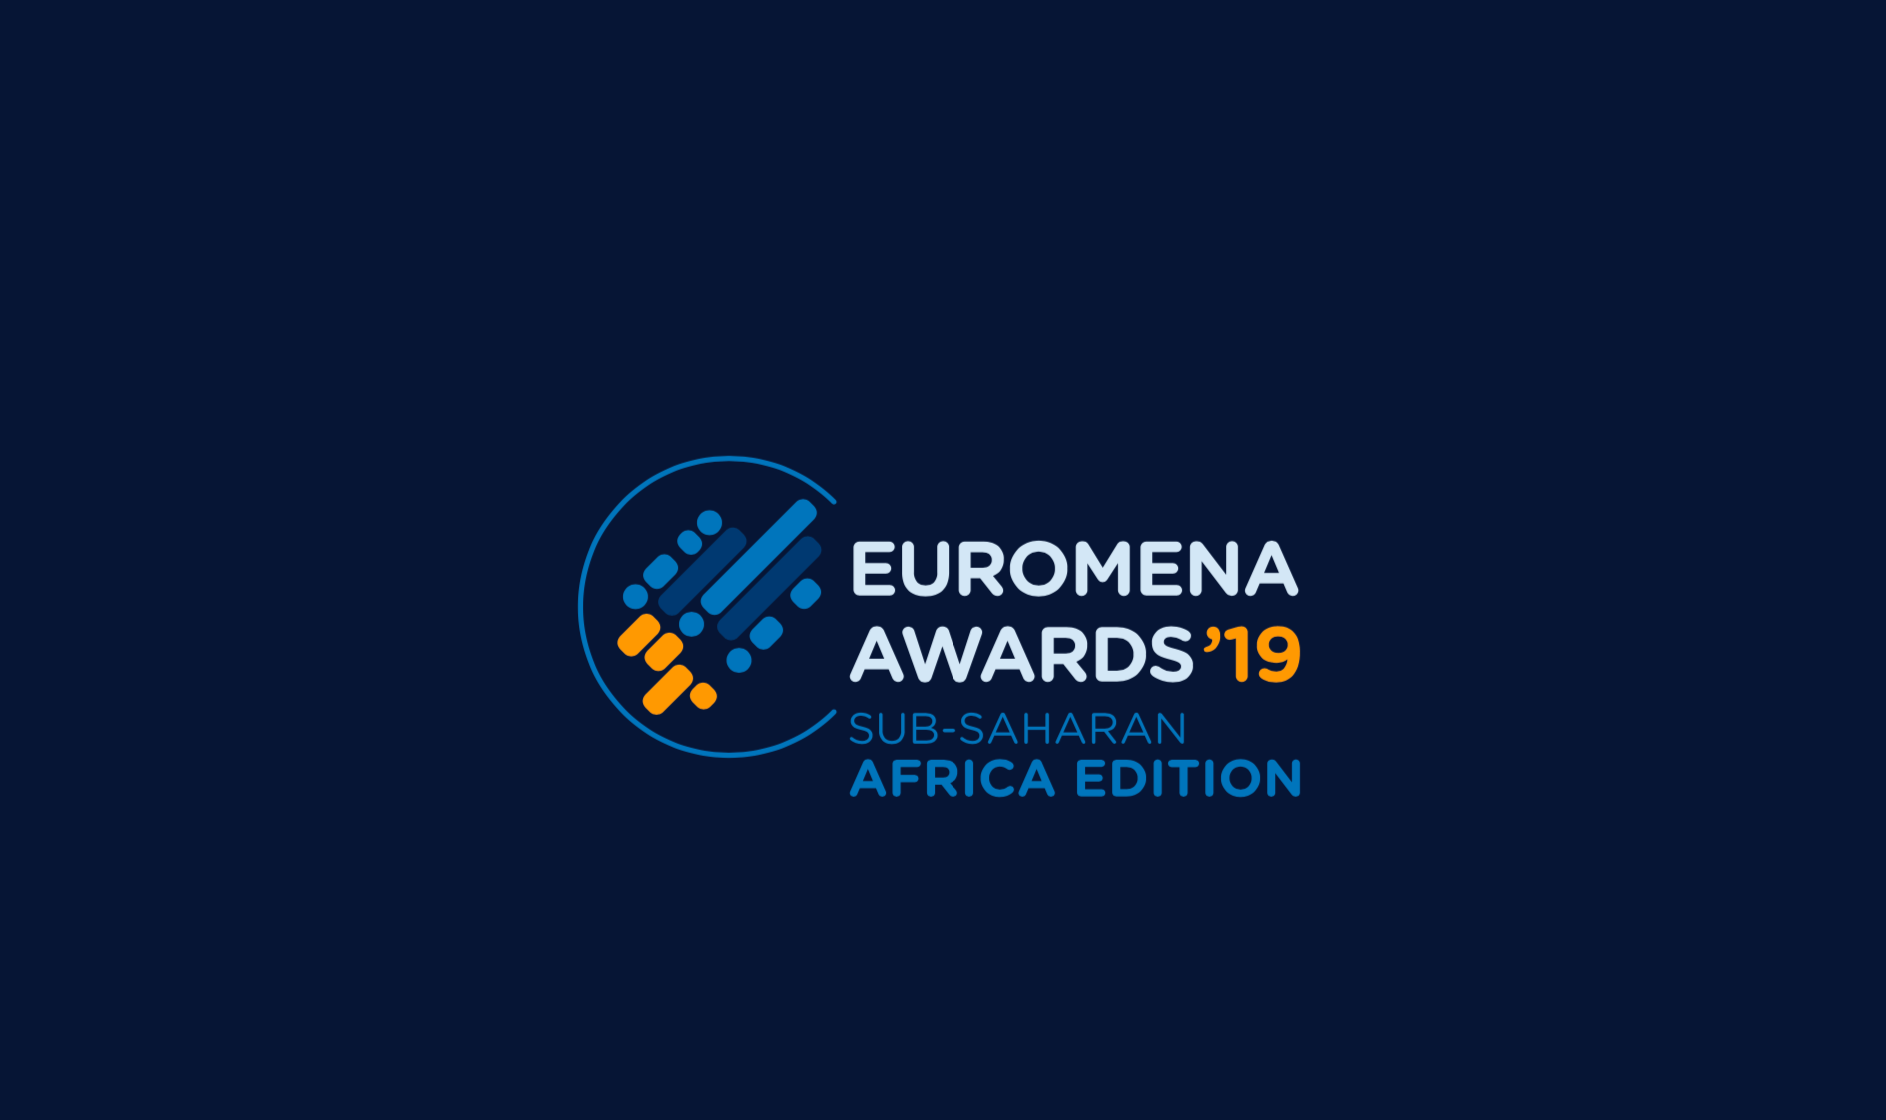 2019 Euromena Awards – Sub-Saharan Africa Edition for Innovative Entrepreneurs -10 000 € Prize